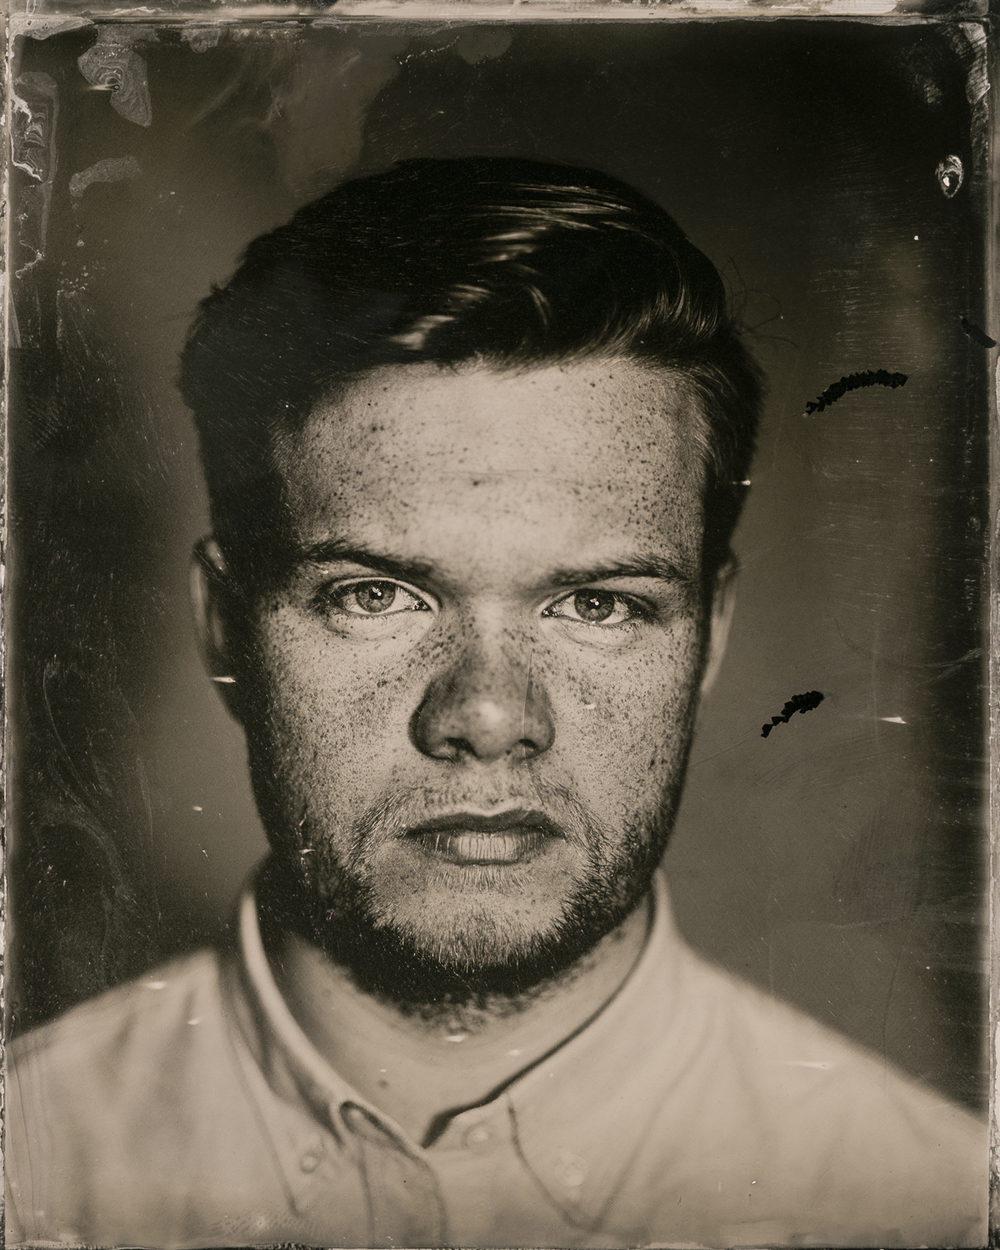 wetplate_studio_dortmund_20160223_042-Jan.jpg